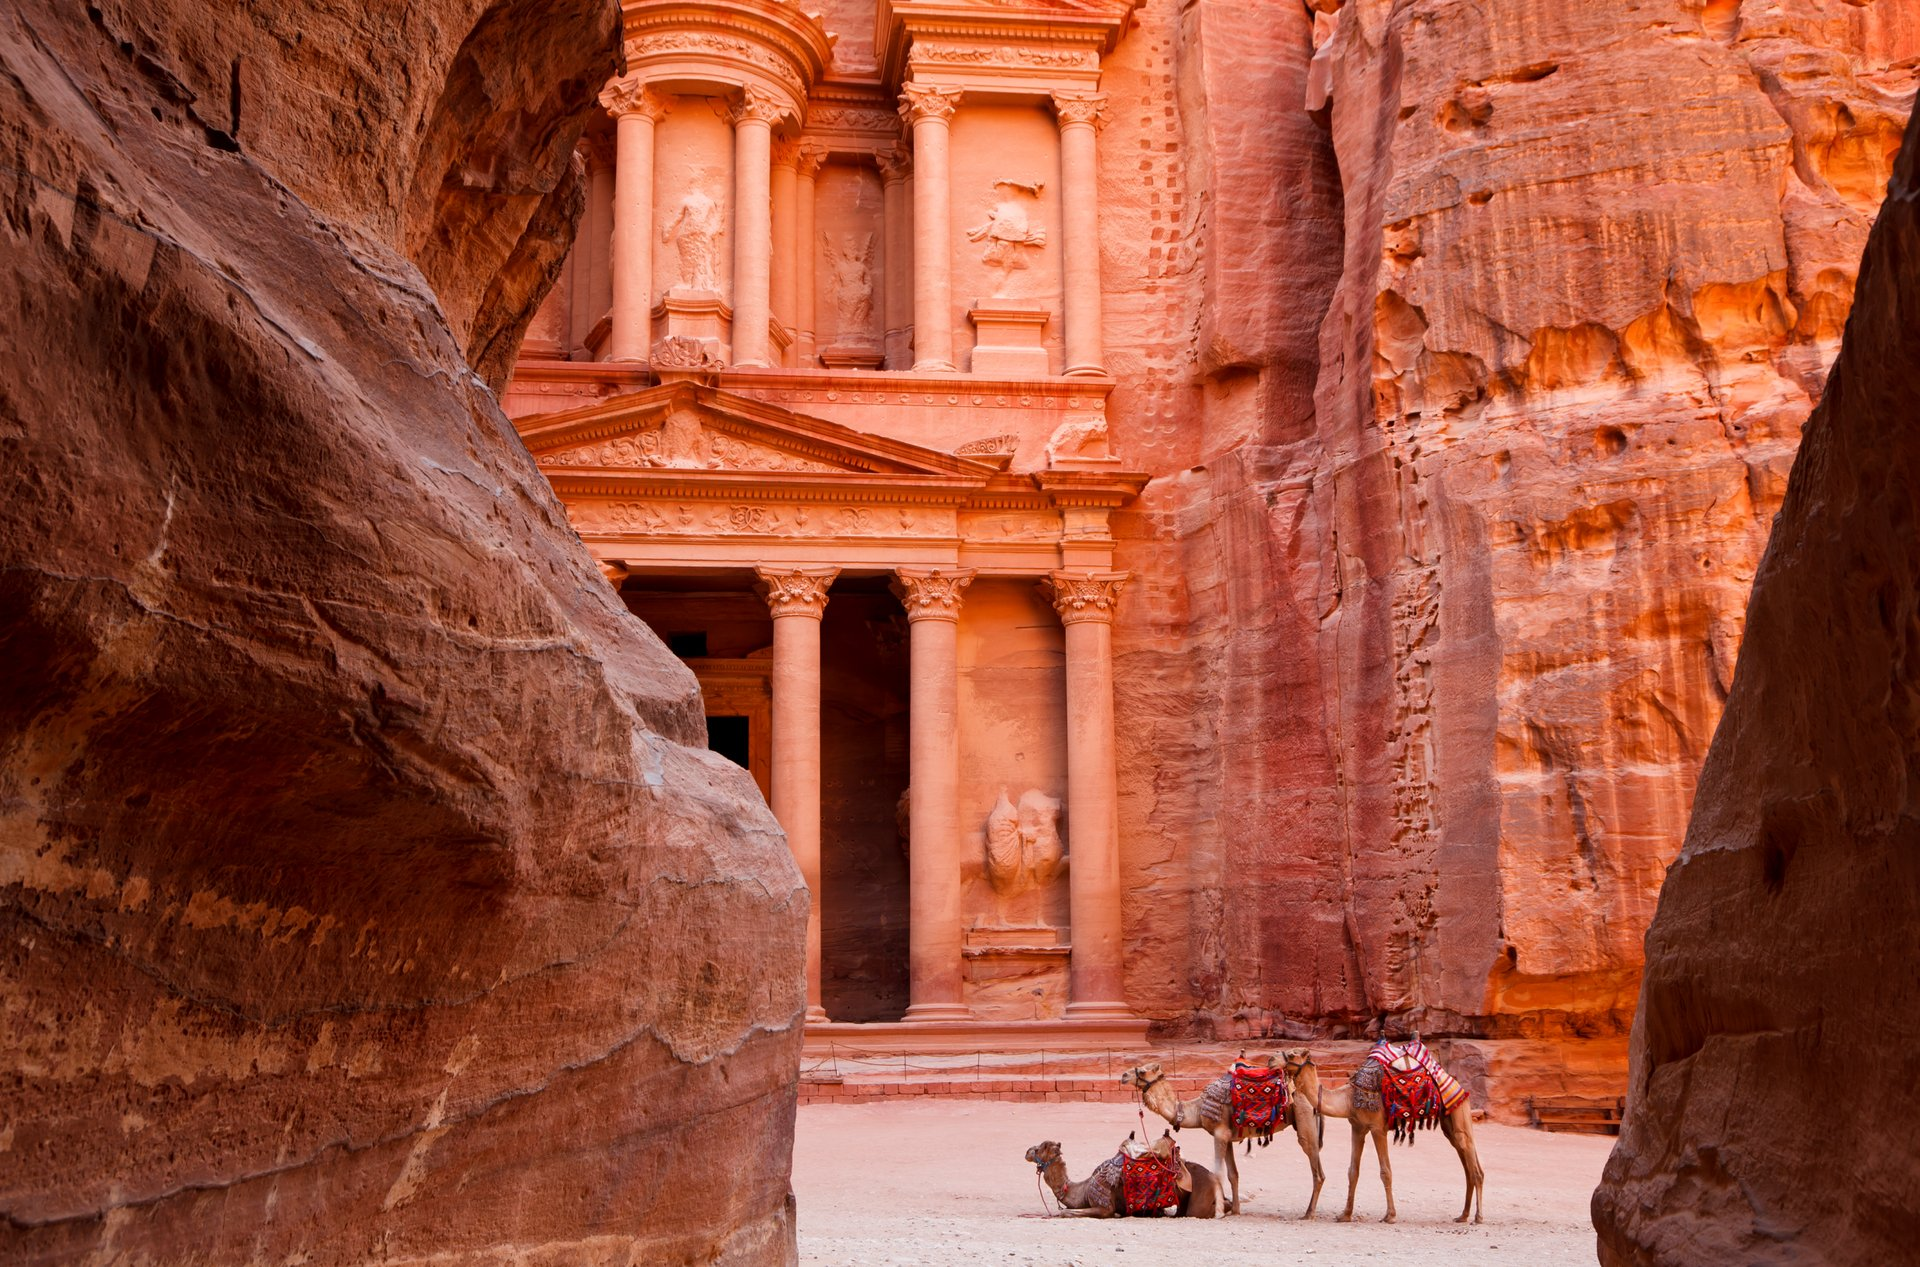 Ancient City of Petra in Jordan 2020 - Best Time